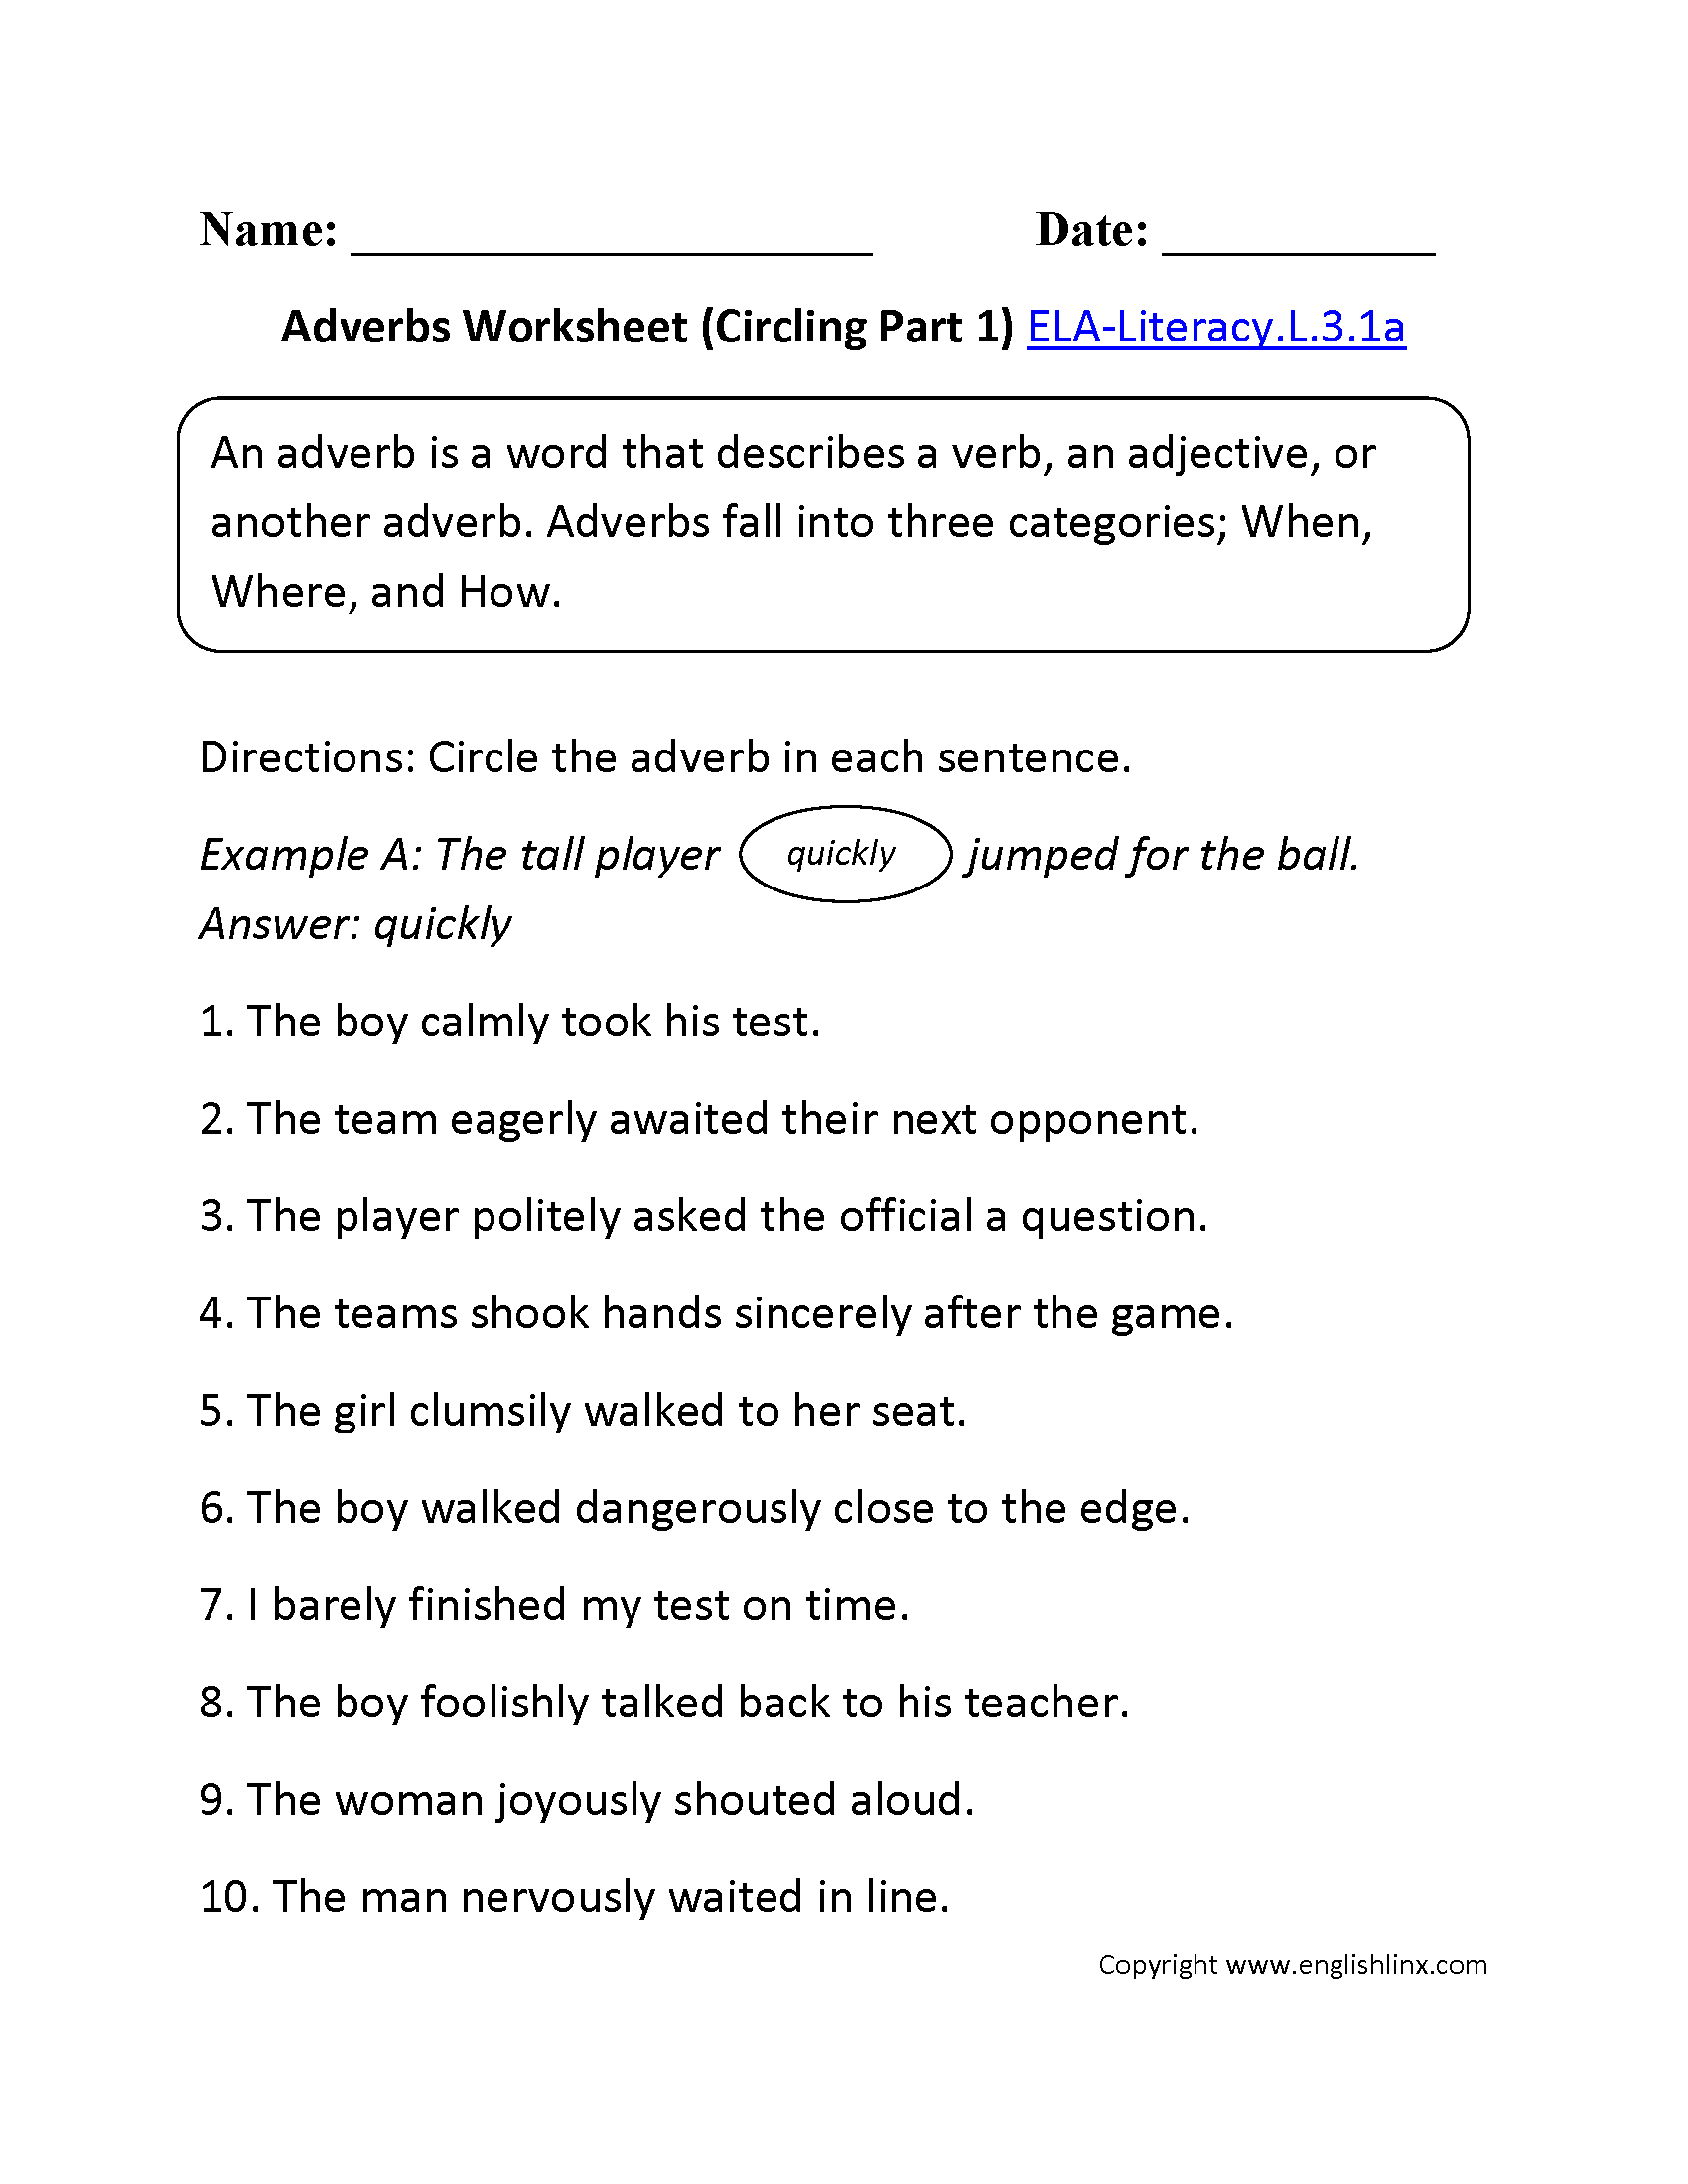 Worksheets 7th Grade Ela Worksheets adverbs worksheet 1 ela literacy l 3 1a language english worksheets that are aligned to the grade common core standards for language